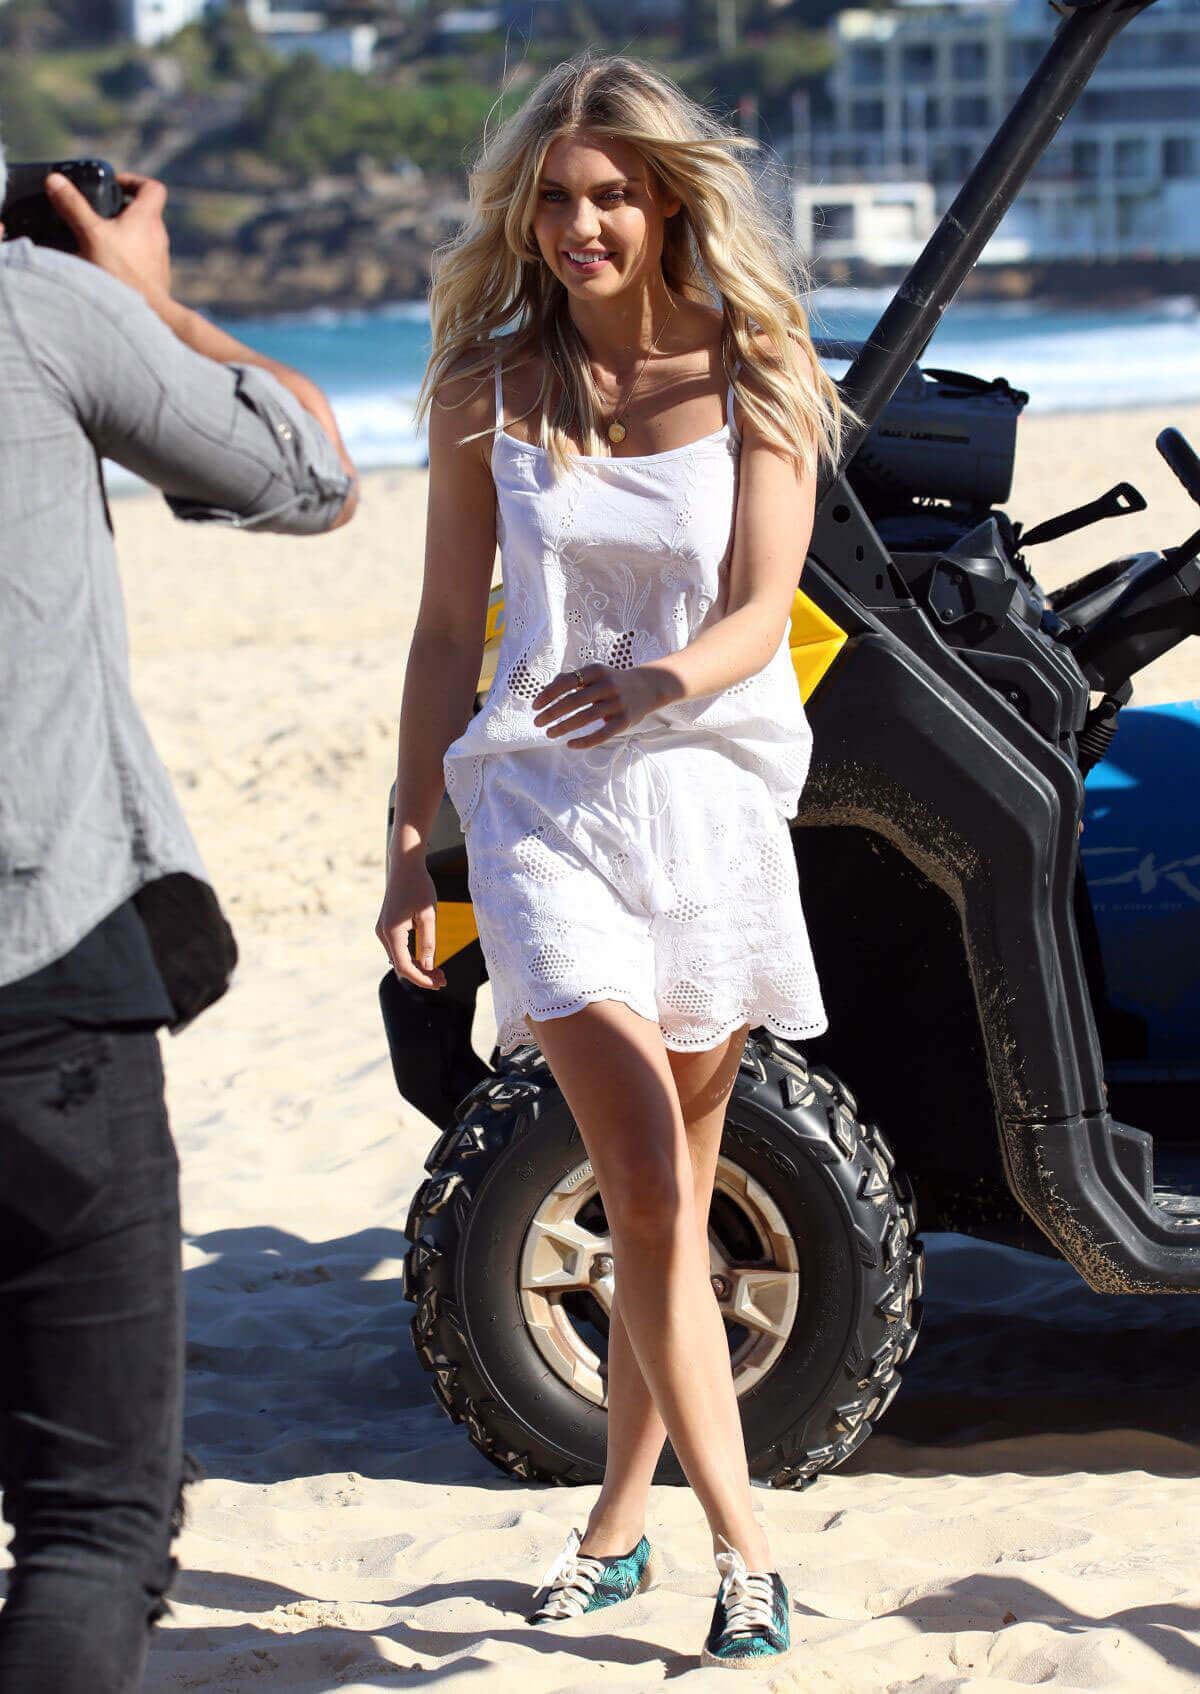 Elyse Knowles Photoshoot in jumpsuit for Ugg Shoes at Bondi Beach